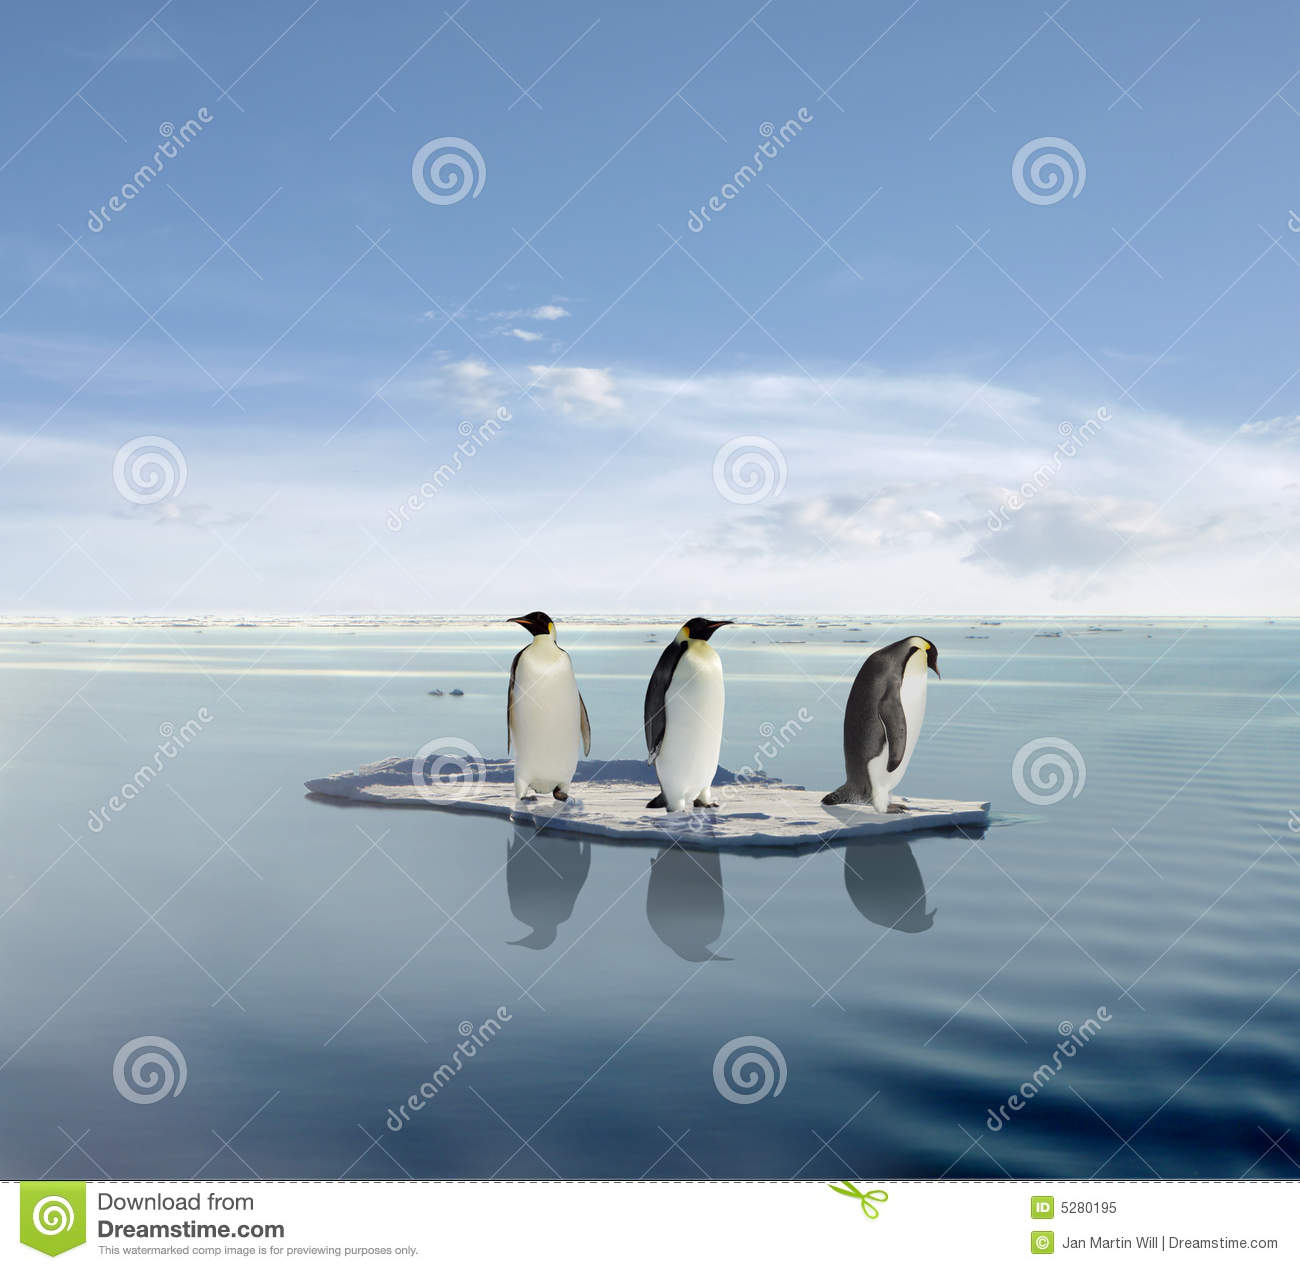 Penguins On Melting Iceberg Royalty Free Stock Photo - Image: 5280195